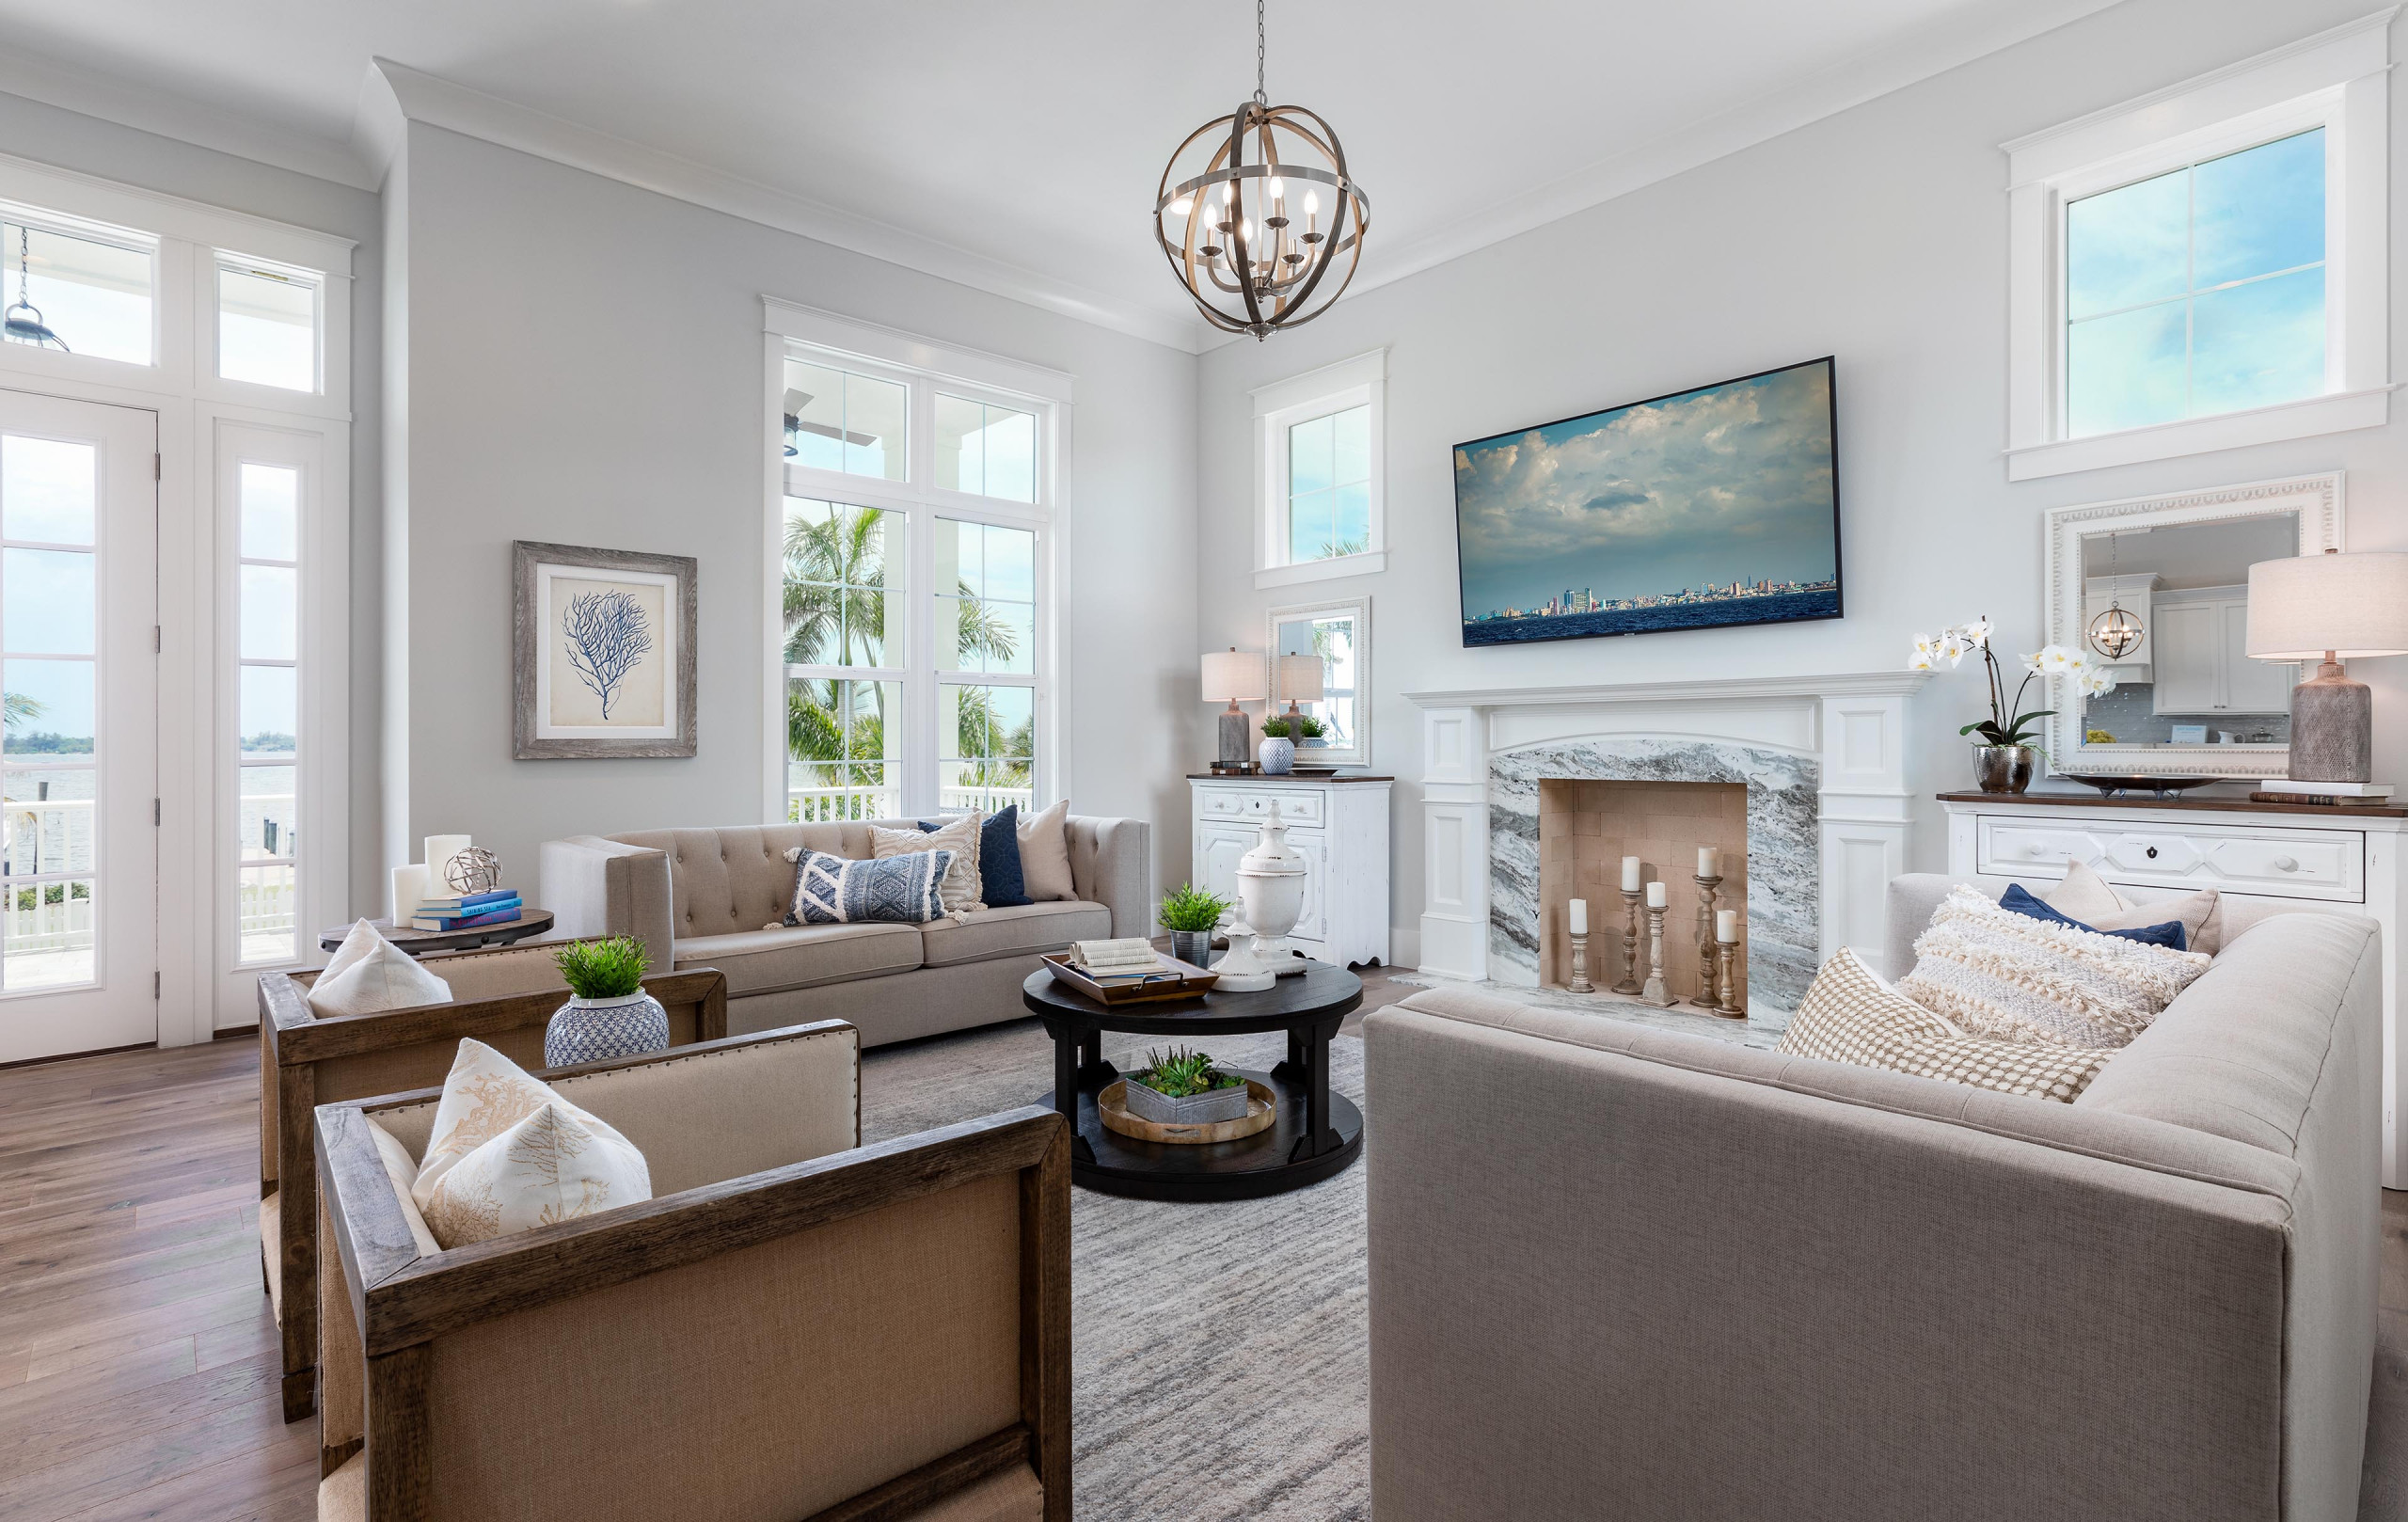 75 Beautiful Vaulted Ceiling Family Room Pictures Ideas January 2021 Houzz